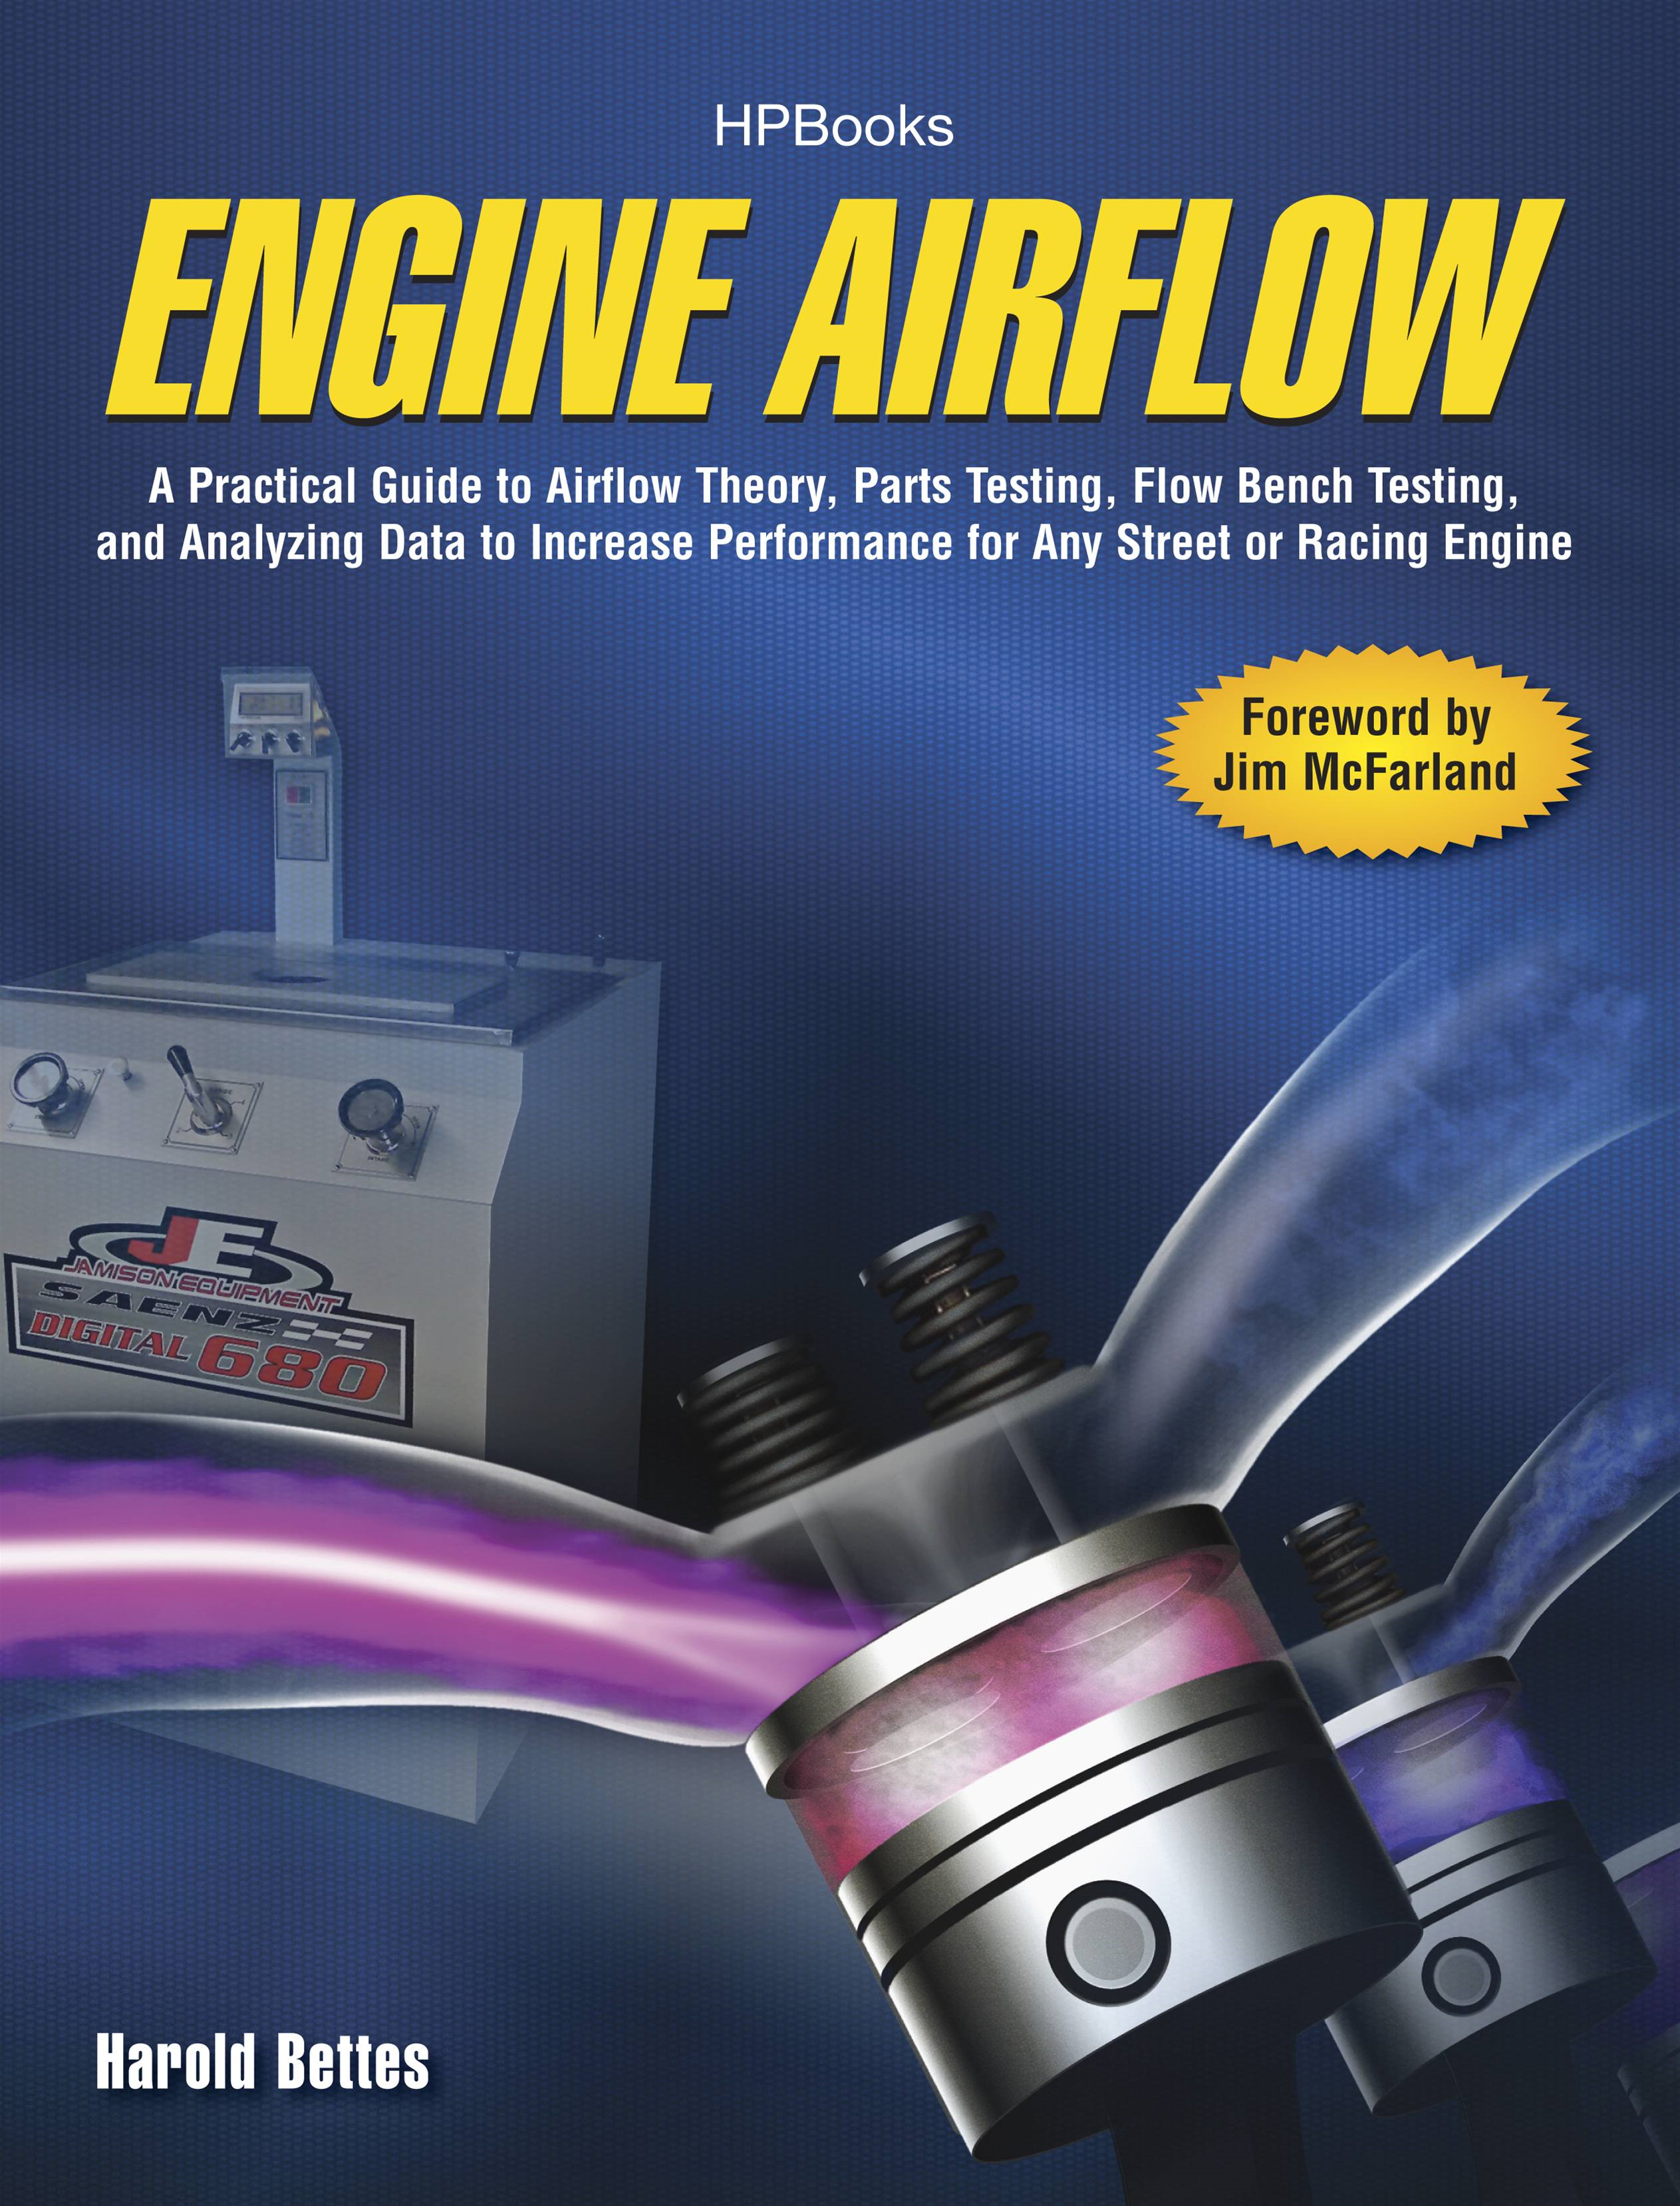 Engine Airflow HP1537: A Practical Guide to Airflow Theory, Parts Testing, Flow Bench Testing and Analyzing Data to Increase Performance for Any Street or Racing Engine